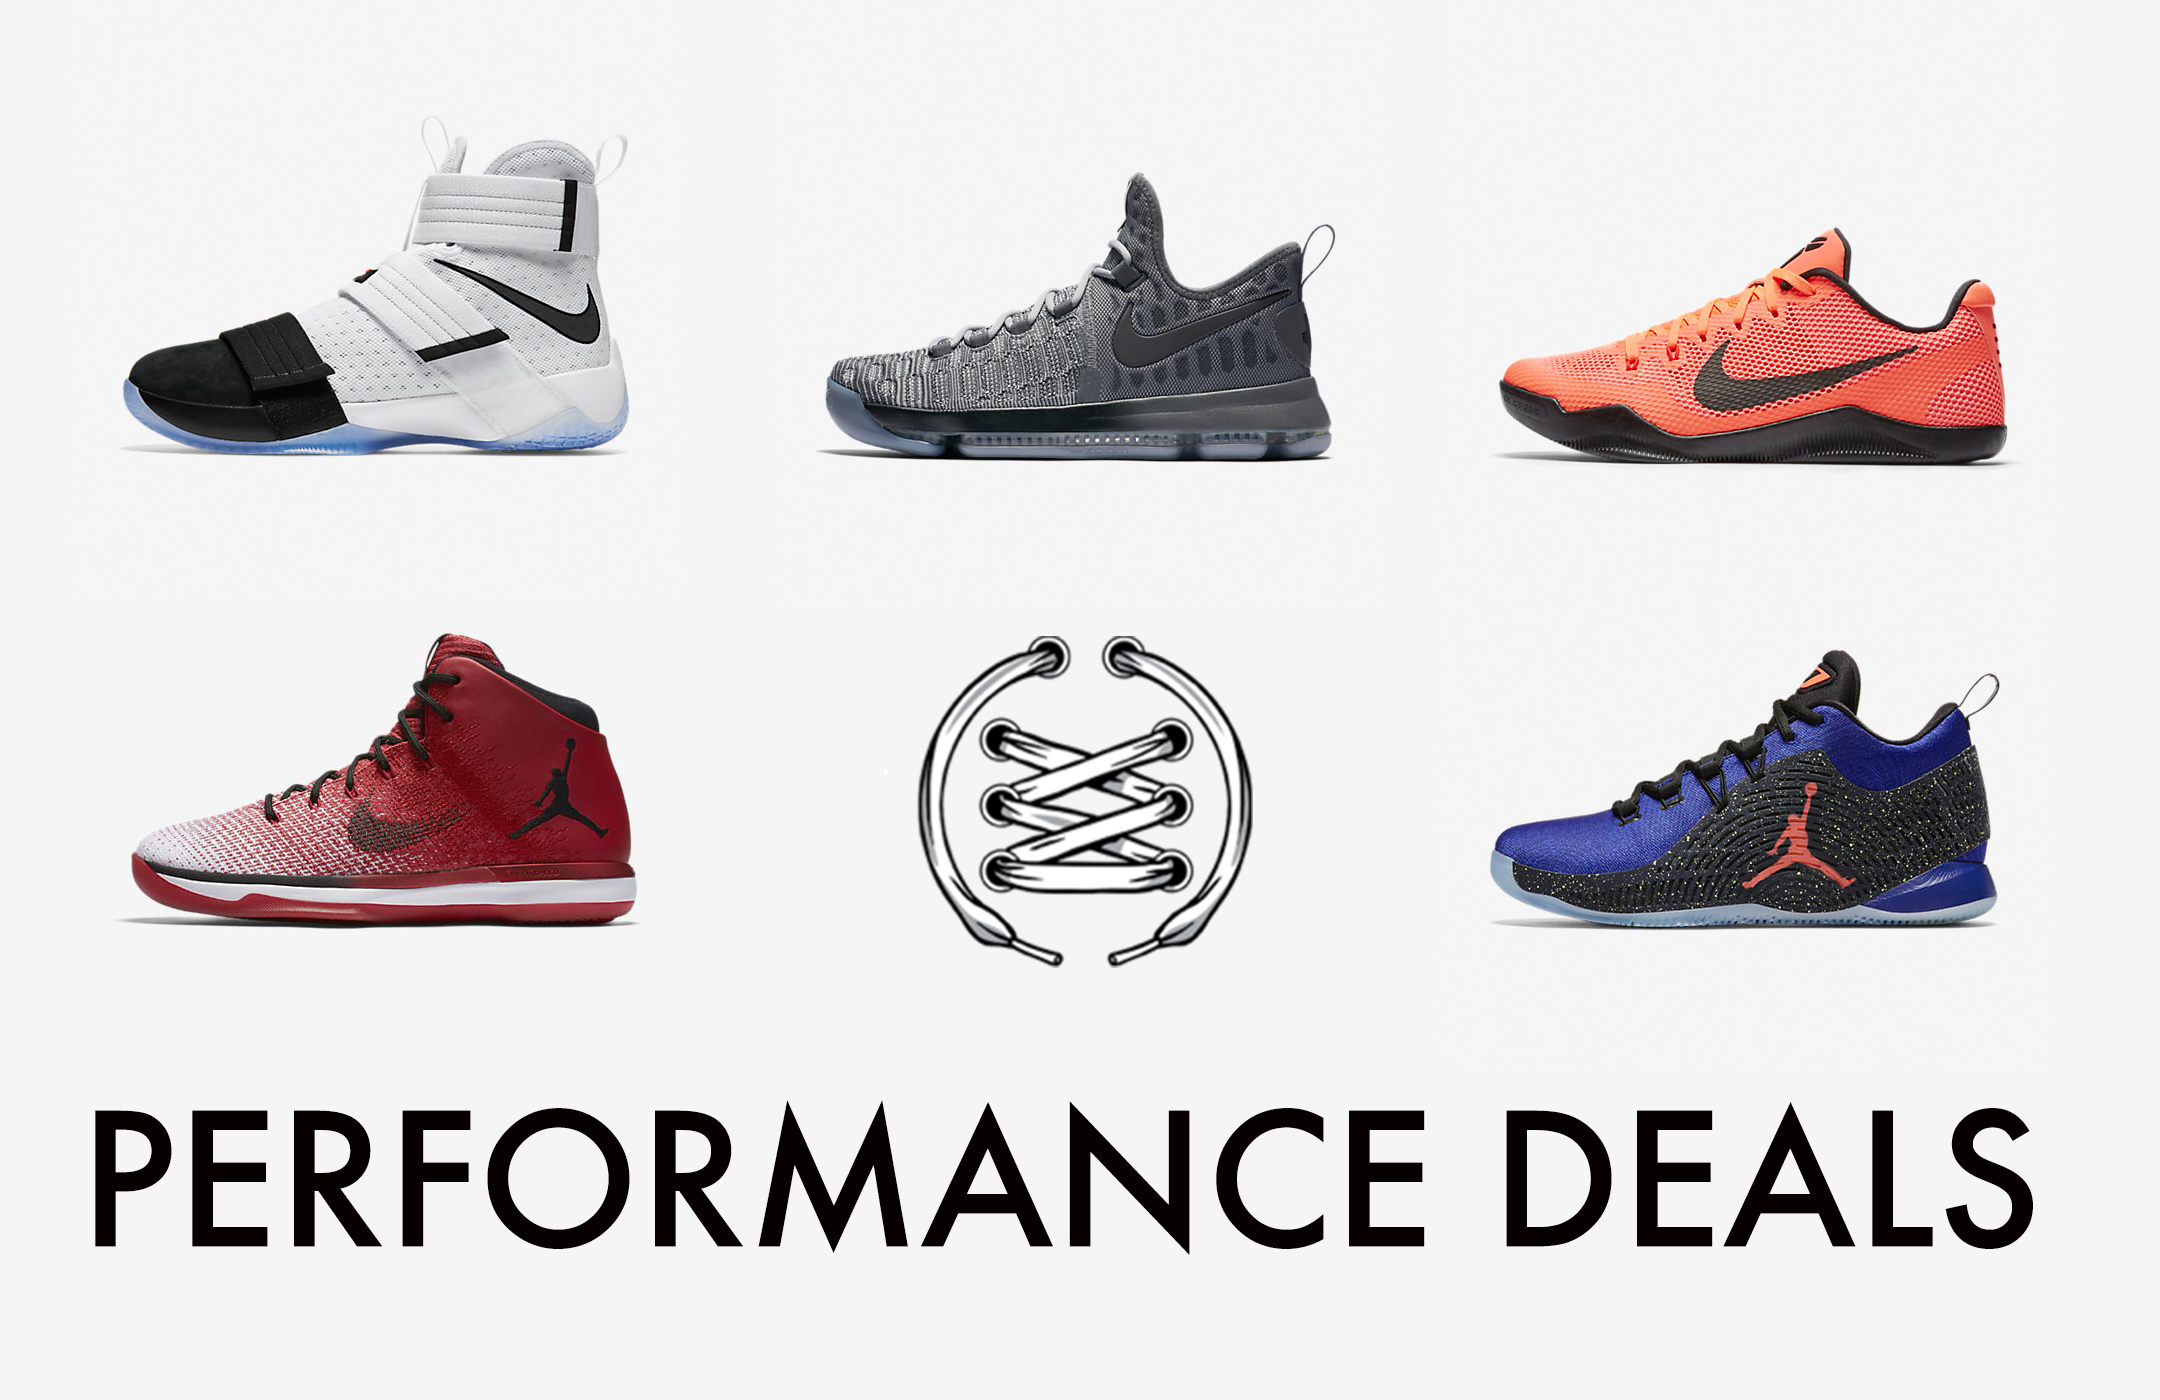 NIKE PERFORMANCE DEALS 2